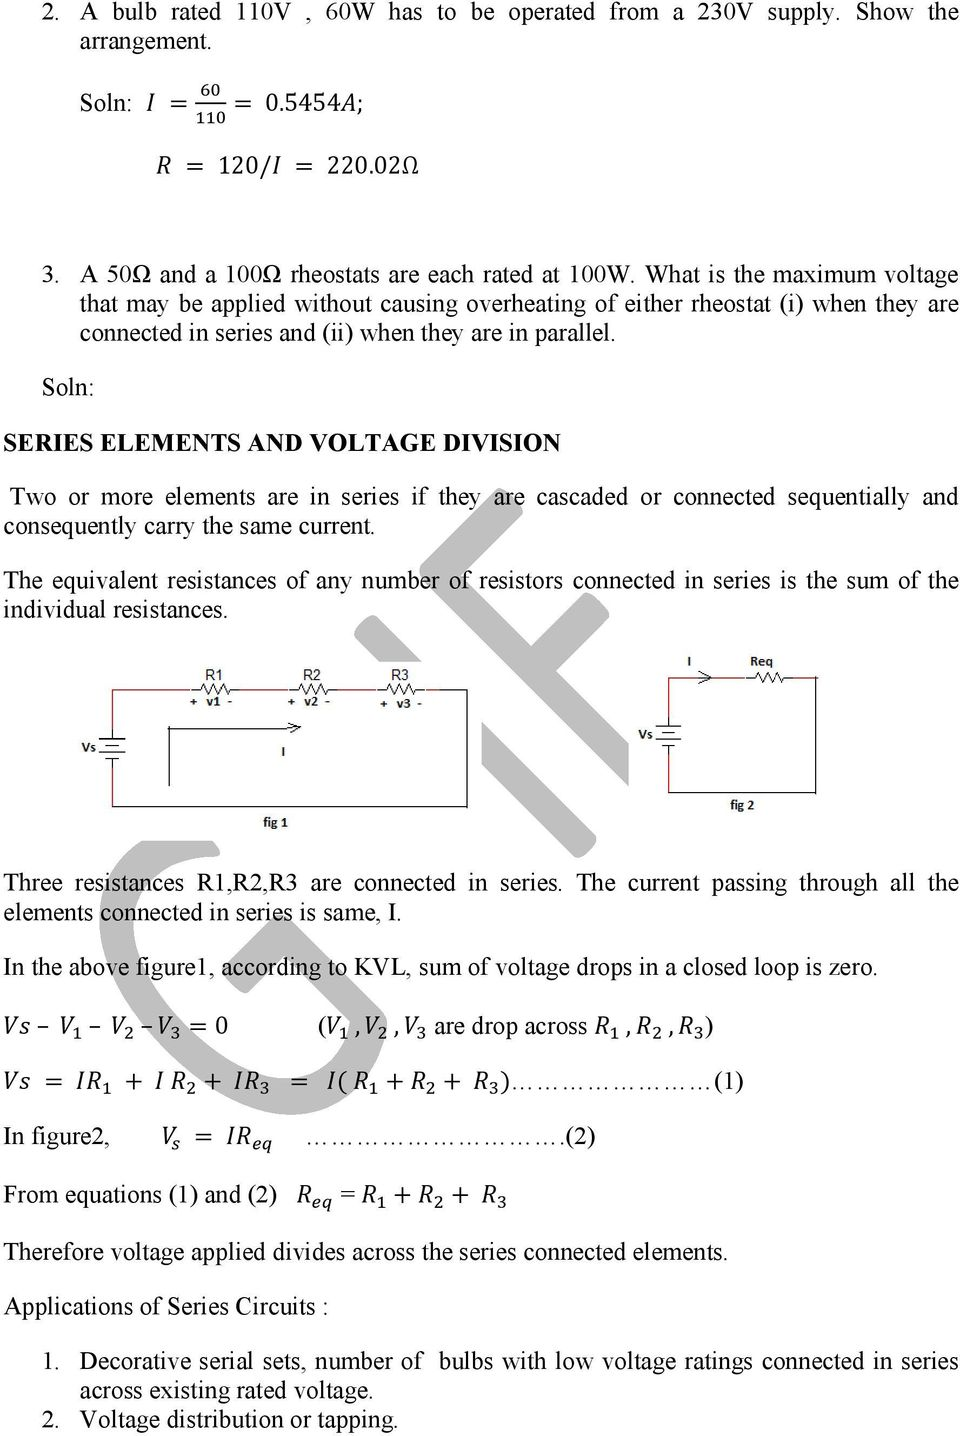 Basic Electrical Engineering Pdf Dc Series Circuit With Three Resistors Soln Elements And Voltage Division Two Or More Are In If They